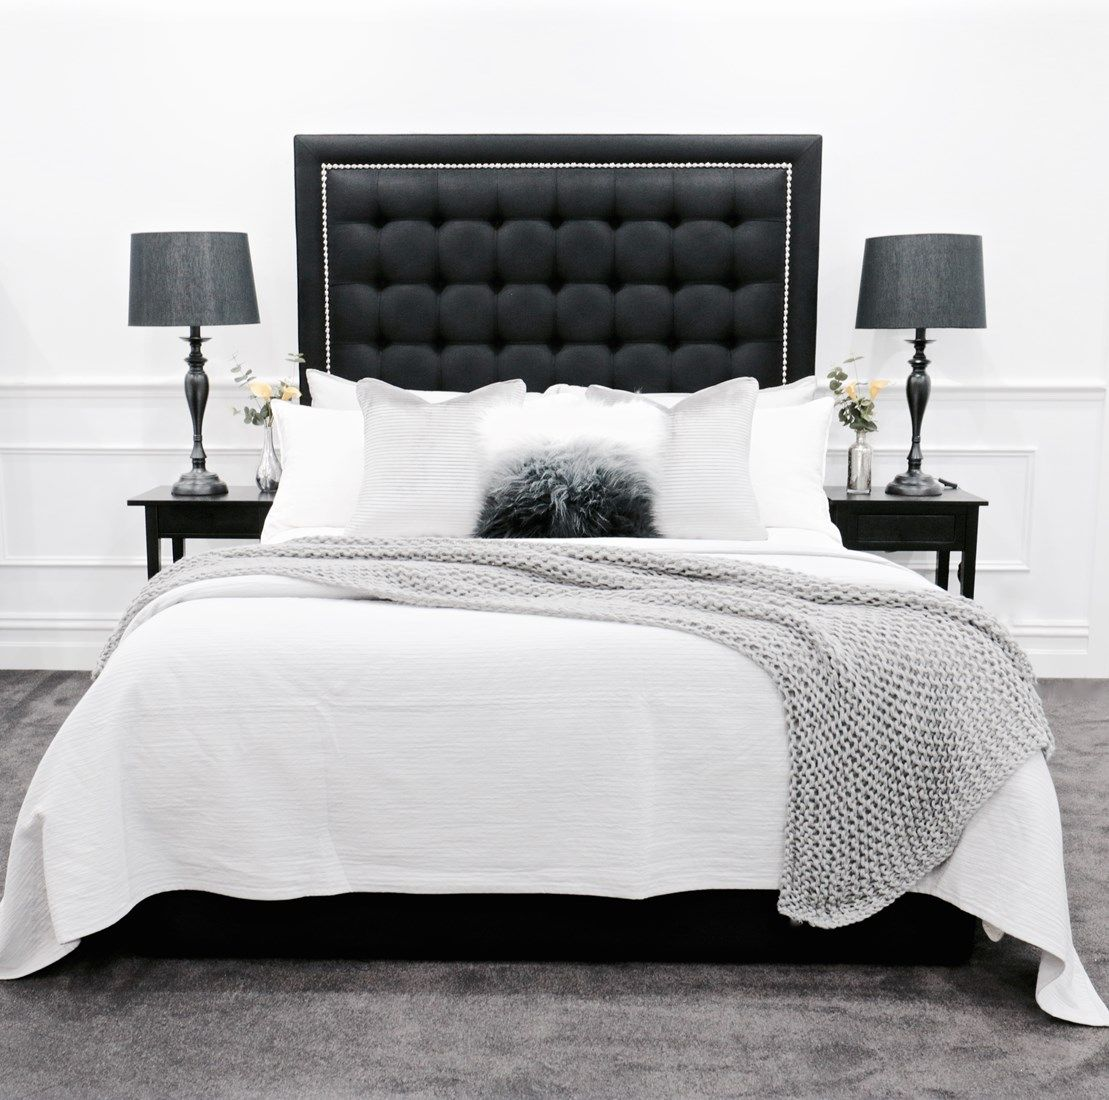 upholstered beds  upholstered bedheads  headboards  buttoned bed  buttoned bedhead  chesterfield